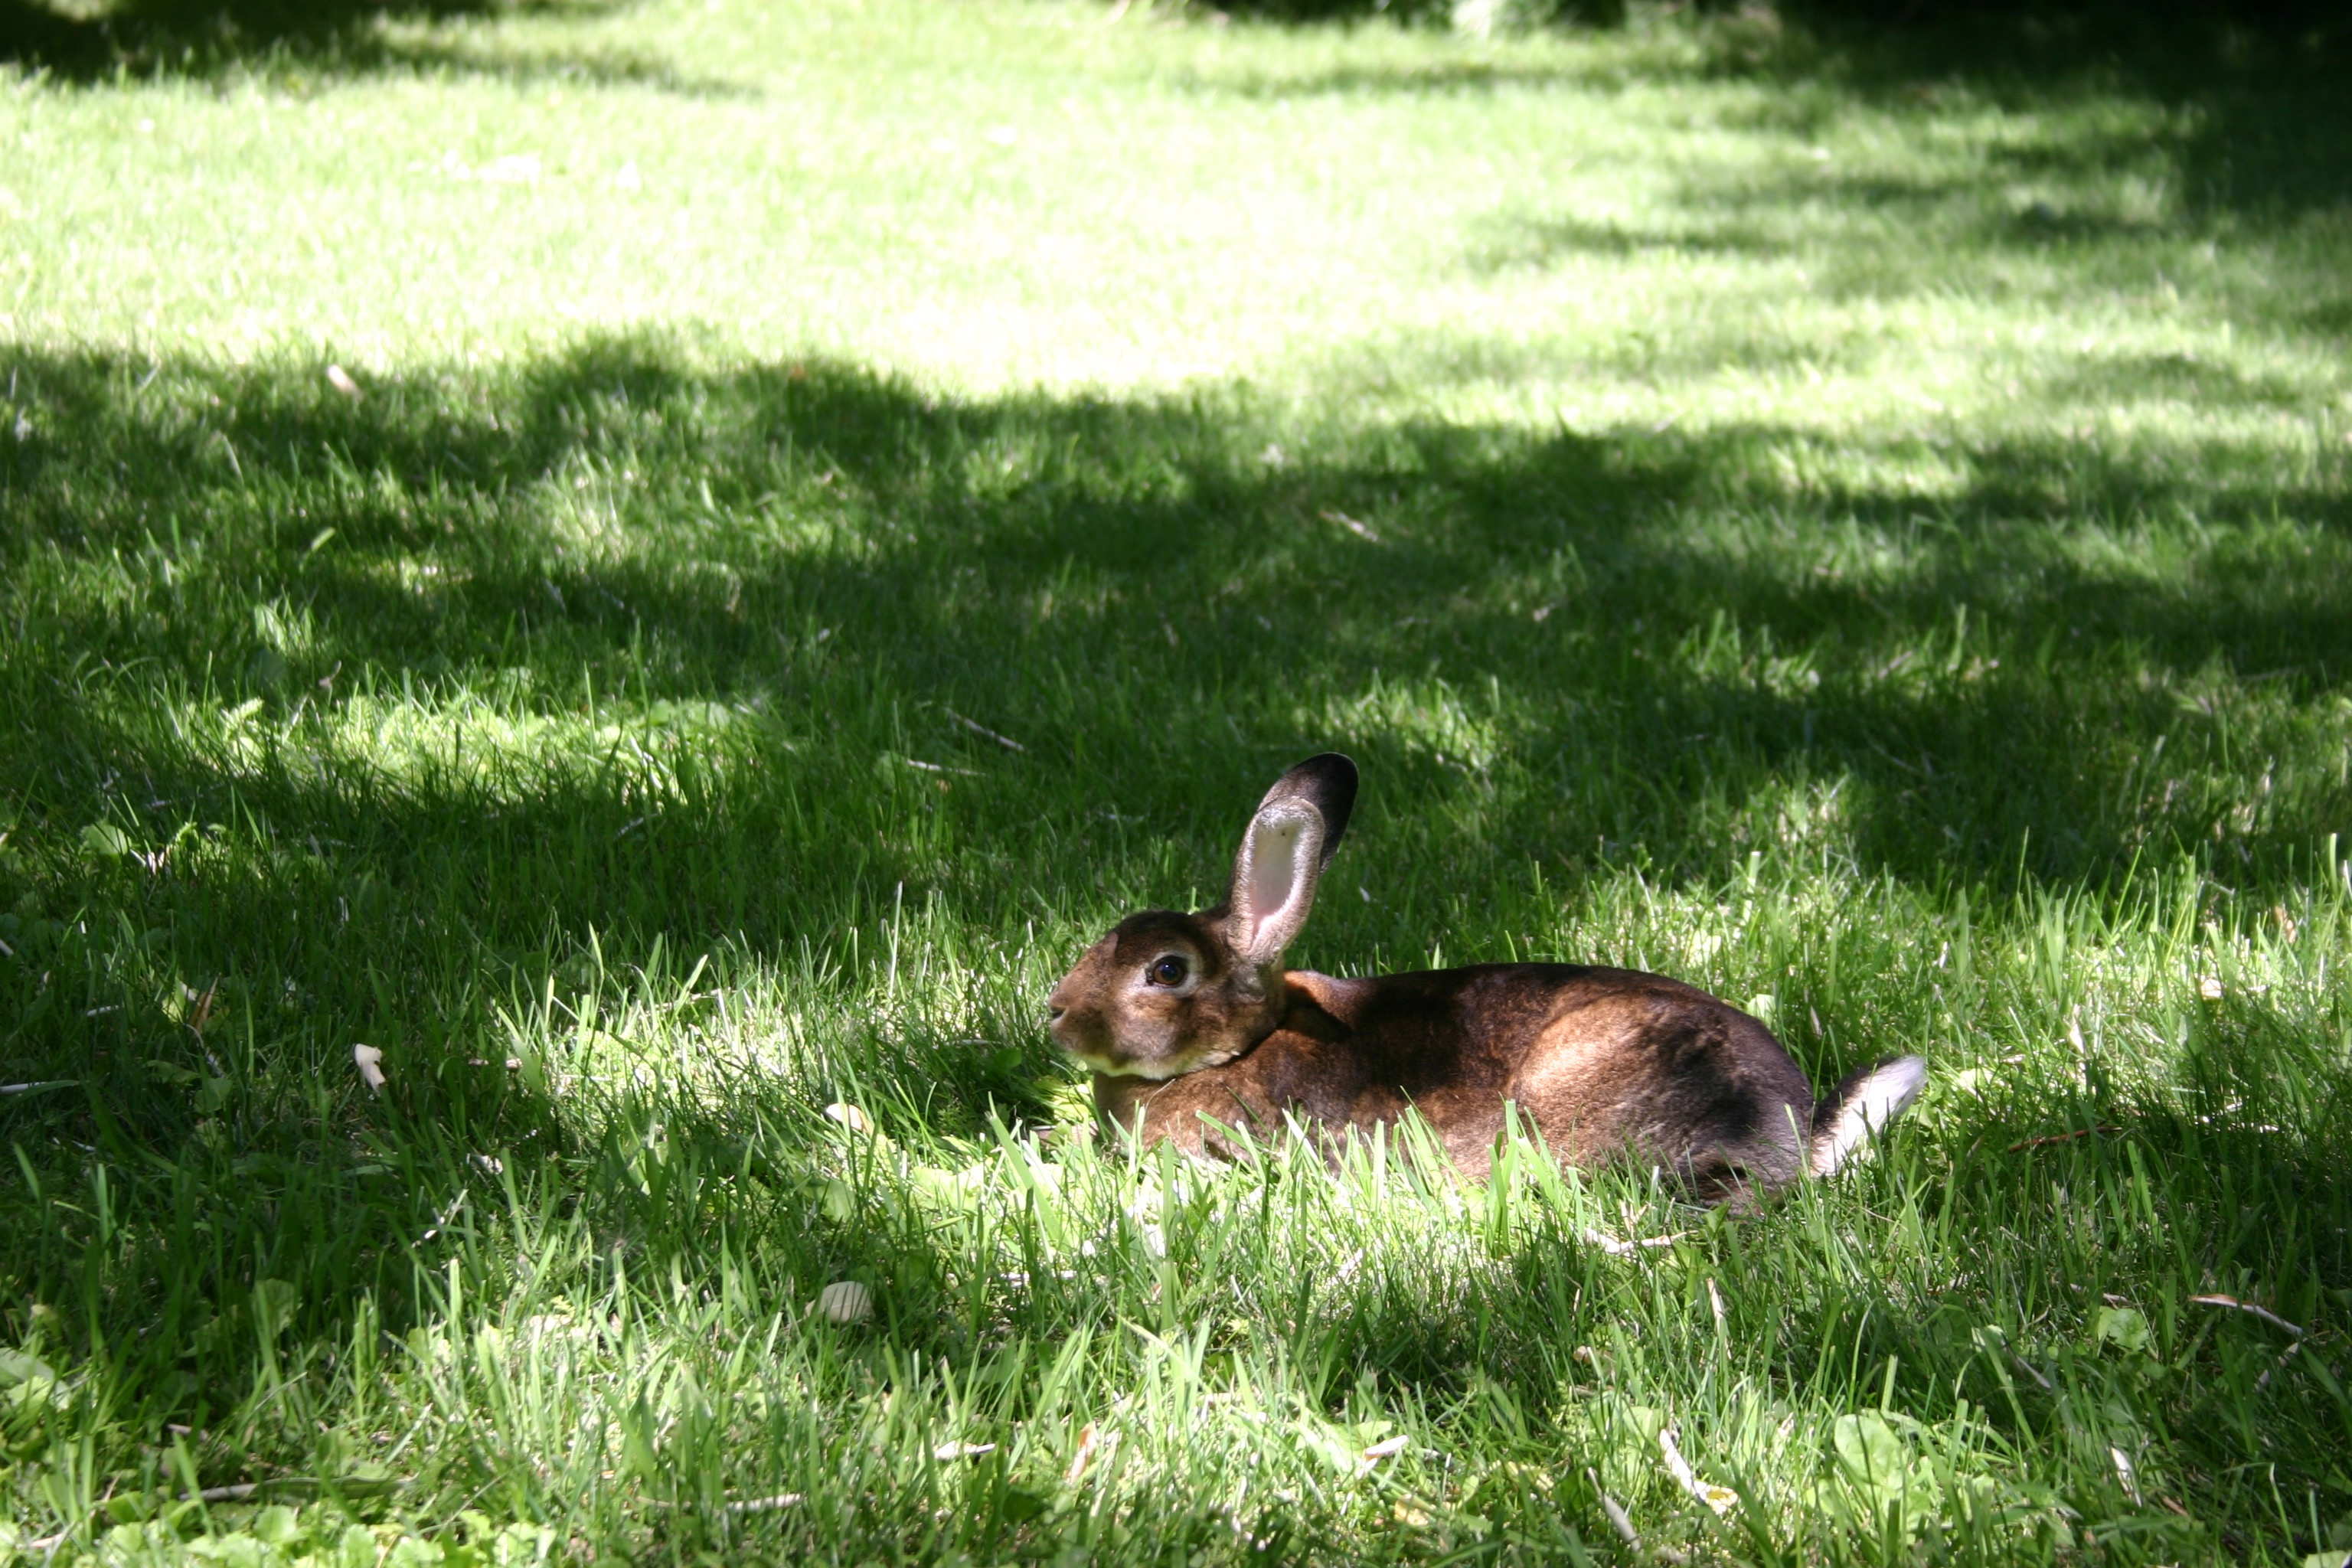 Brown bunny rabbit laying on the green grass.